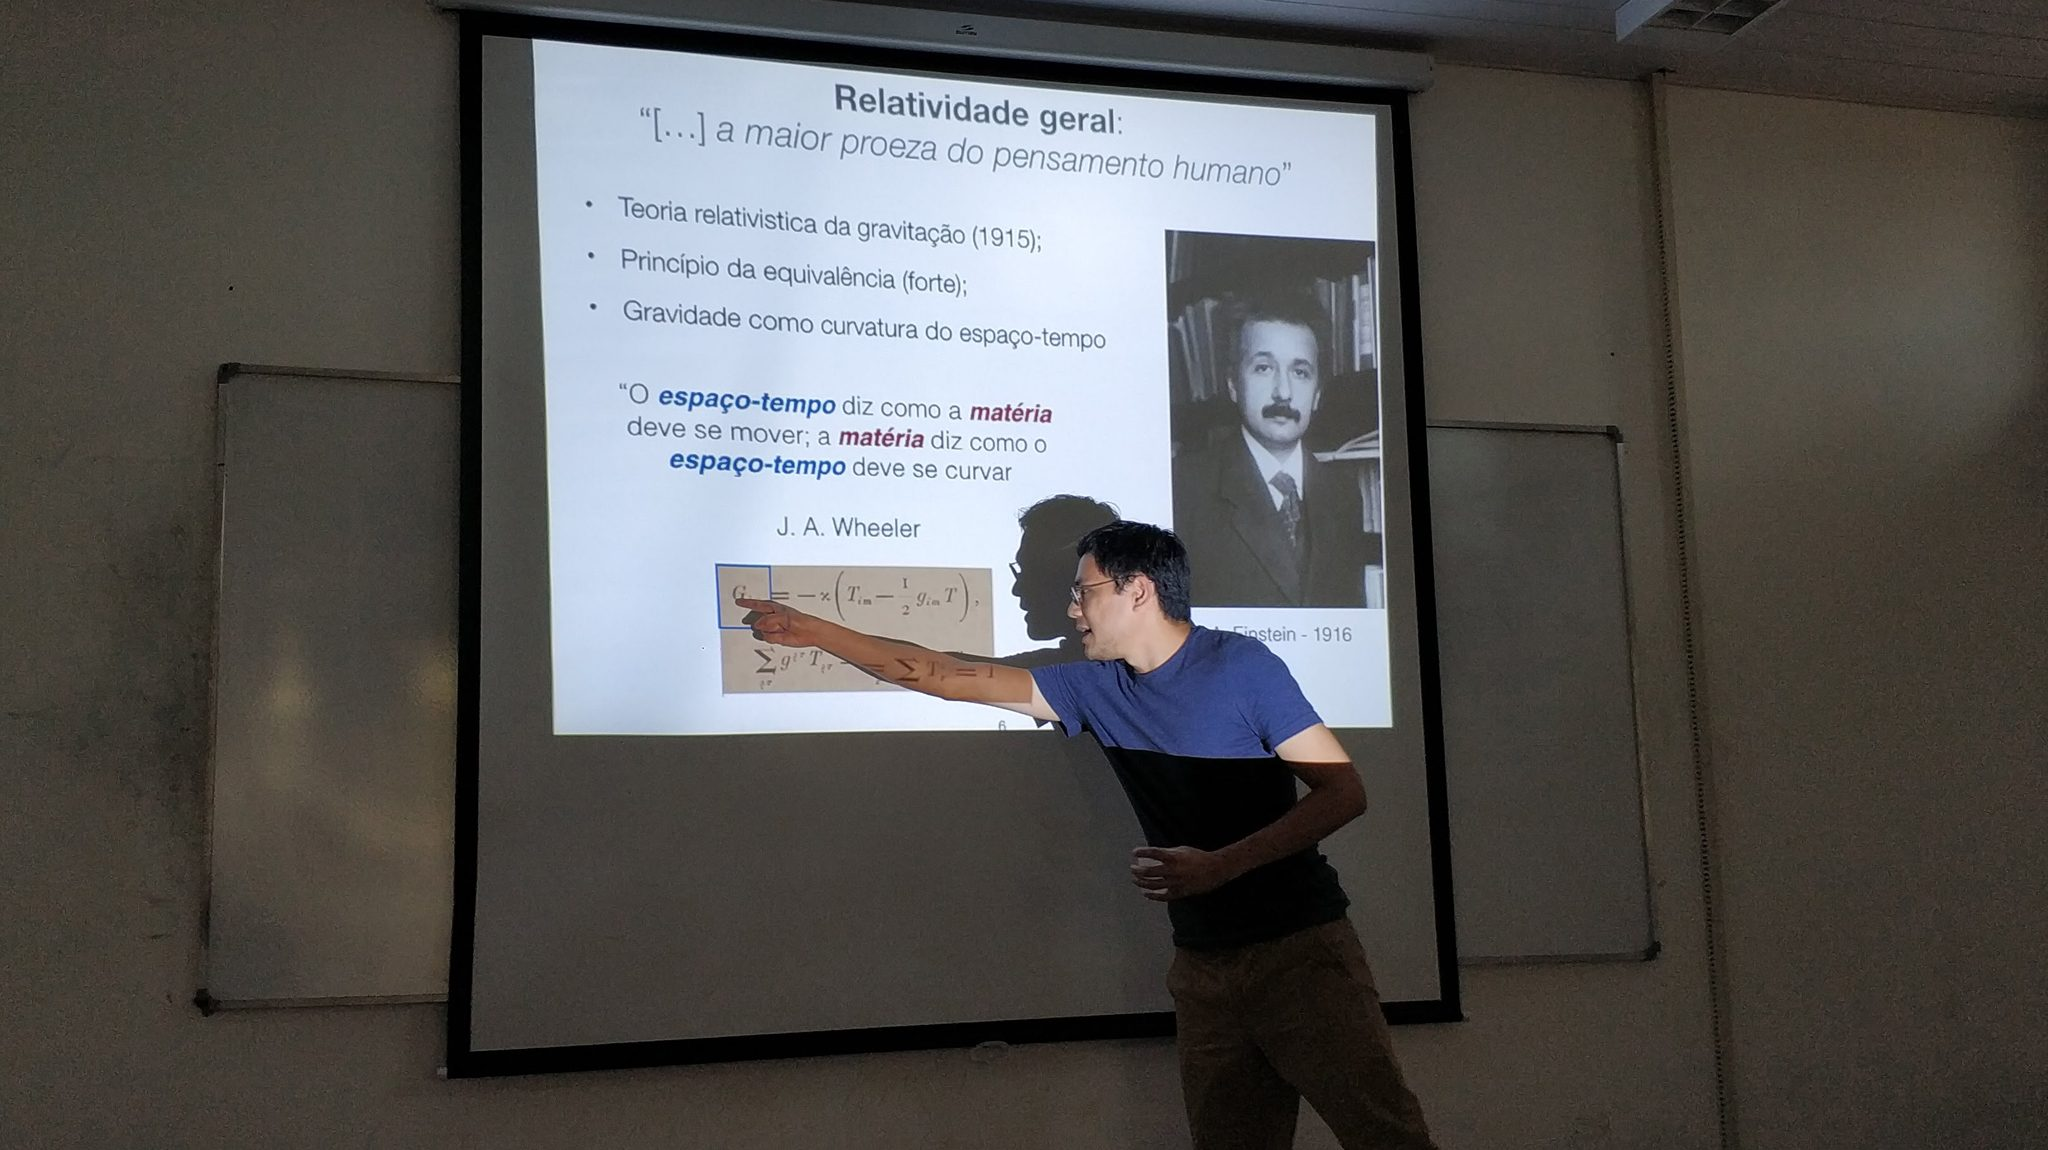 Physics Alumnus Wins International Award for Gravitational Wave Thesis - Ole Miss News